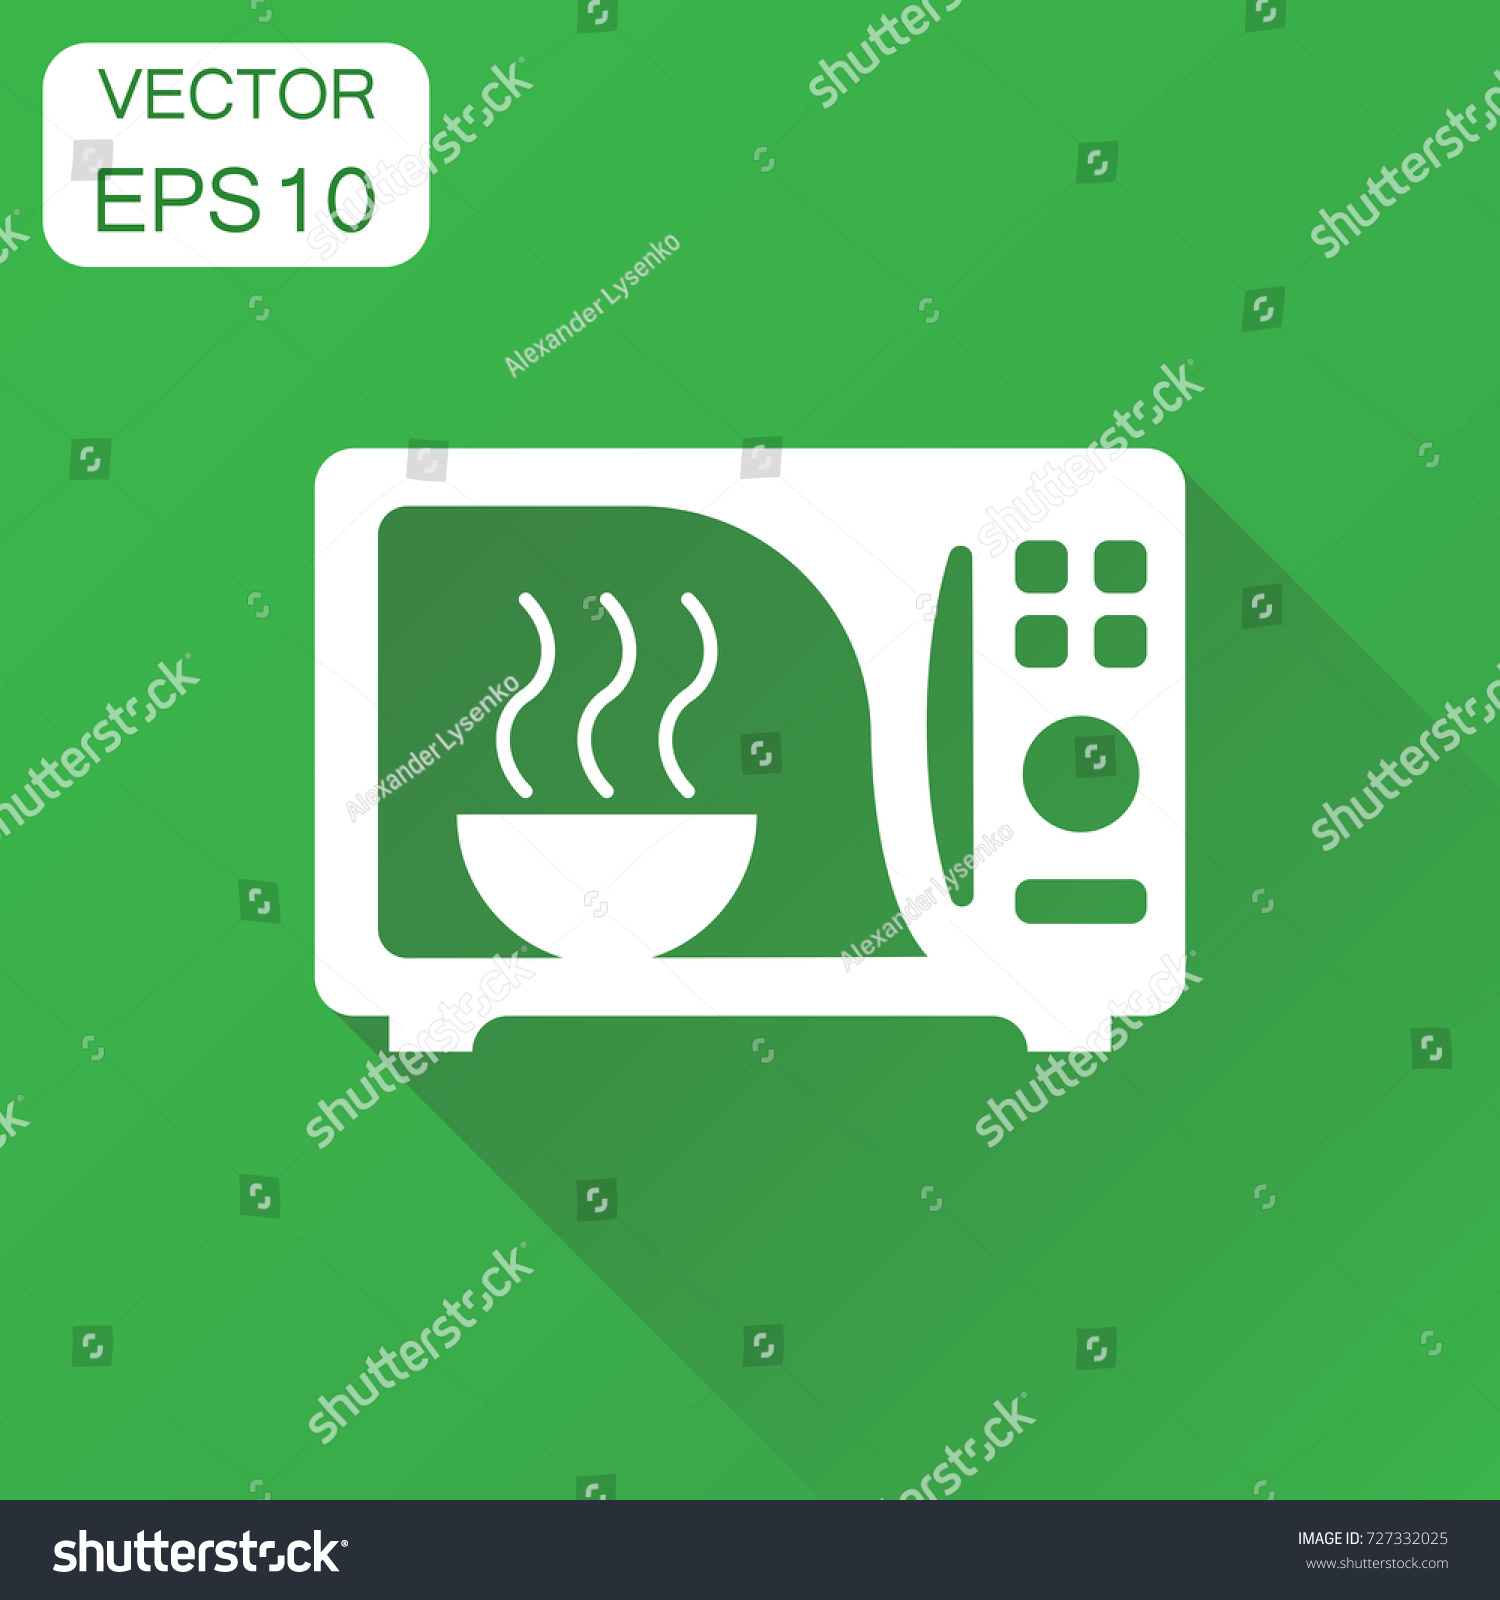 Microwave icon business concept microwave oven stock vector business concept microwave oven symbol pictogram vector illustration on green background with buycottarizona Image collections